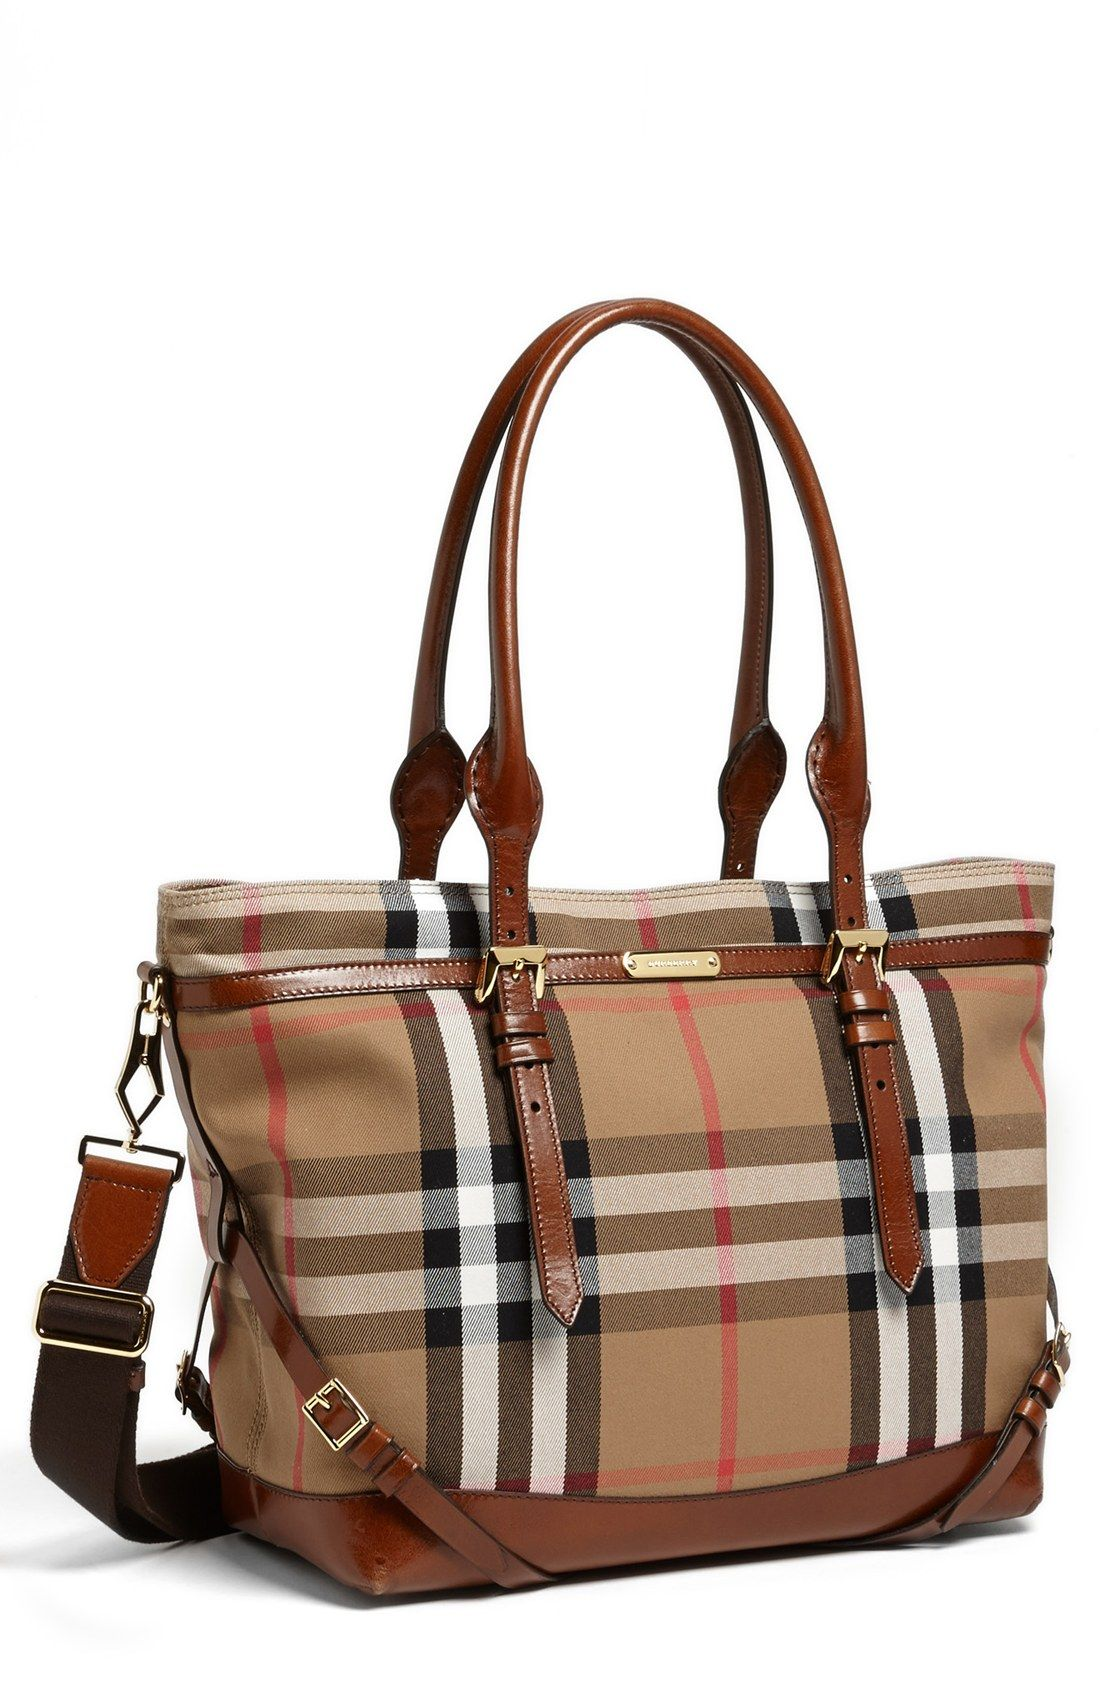 Burberry Diaper Bag $1200